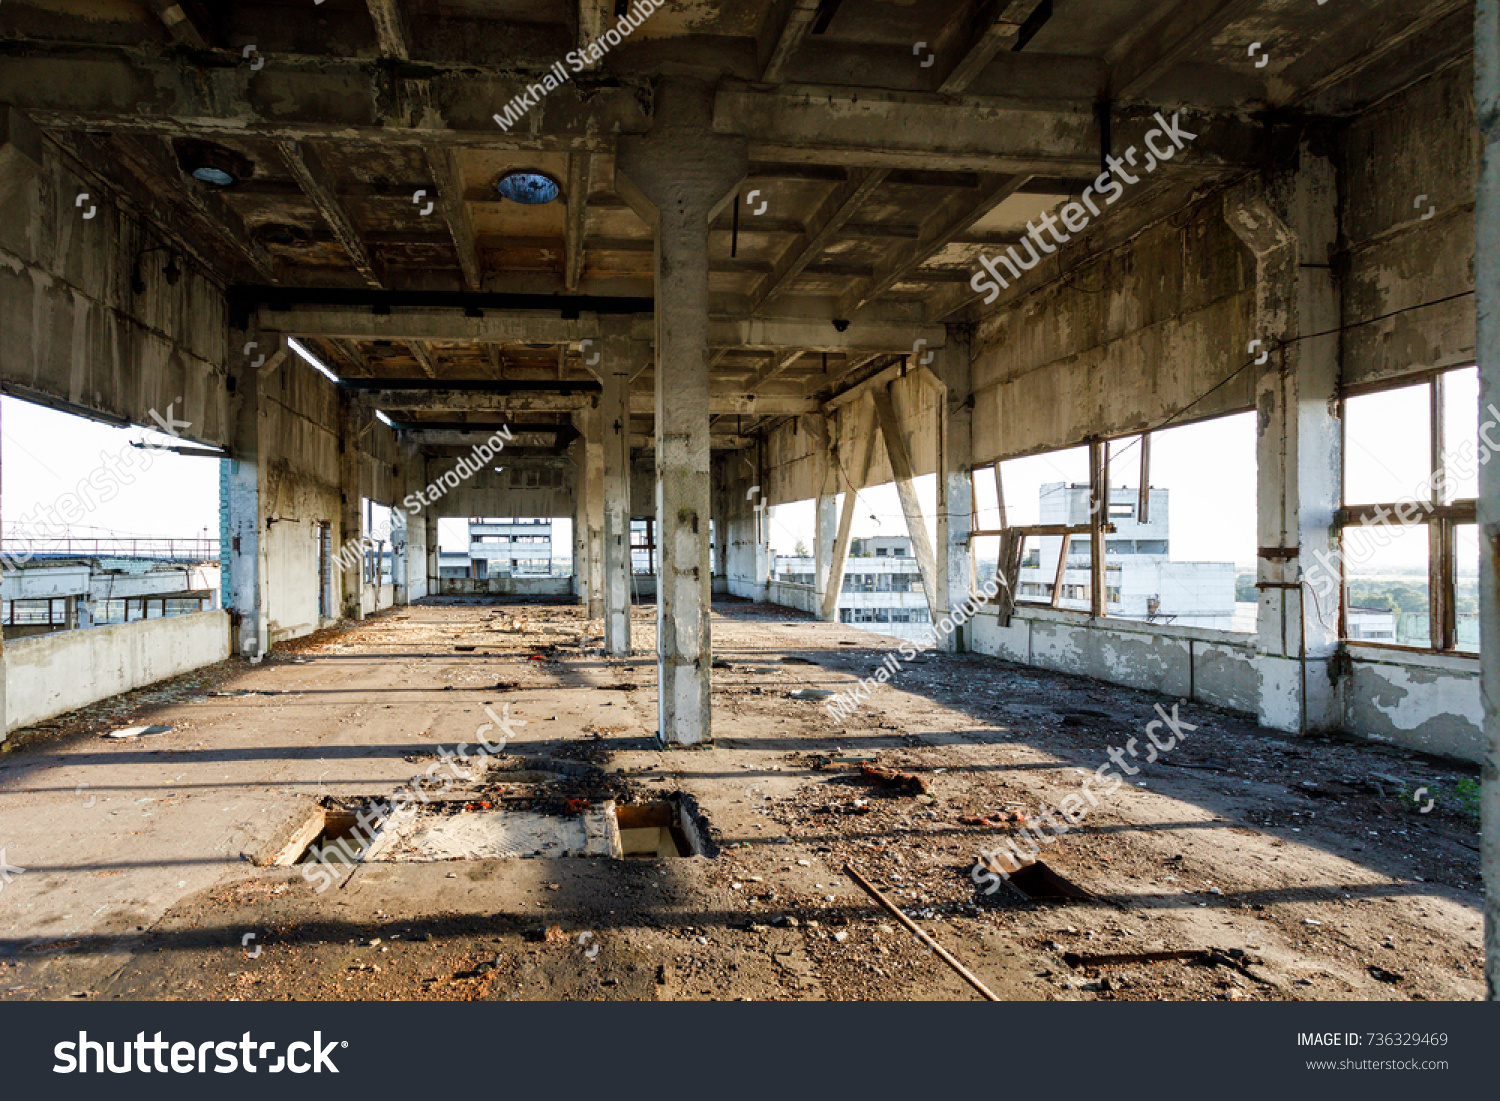 Ruins Old Abandoned Factory Russia Stock Photo 736329469 - Shutterstock for Abandoned Factory Russia  59dqh